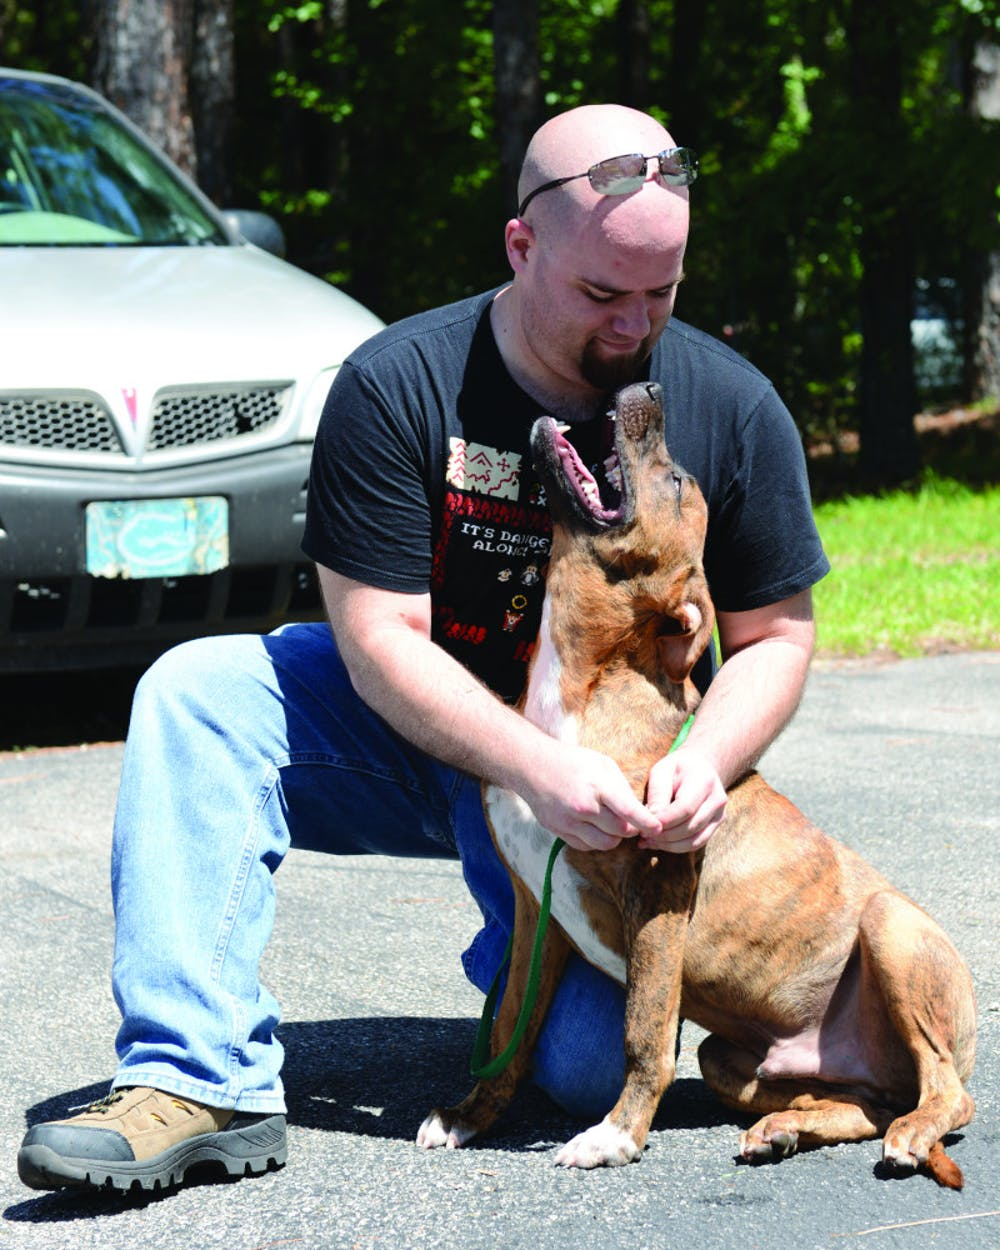 <div>Tim Forbes, 29, puts a leash on his new dog, Graham, at the Summer Lovin' Adoptathon on Saturday. The event found a new home for more than 180 cats and dogs.</div>